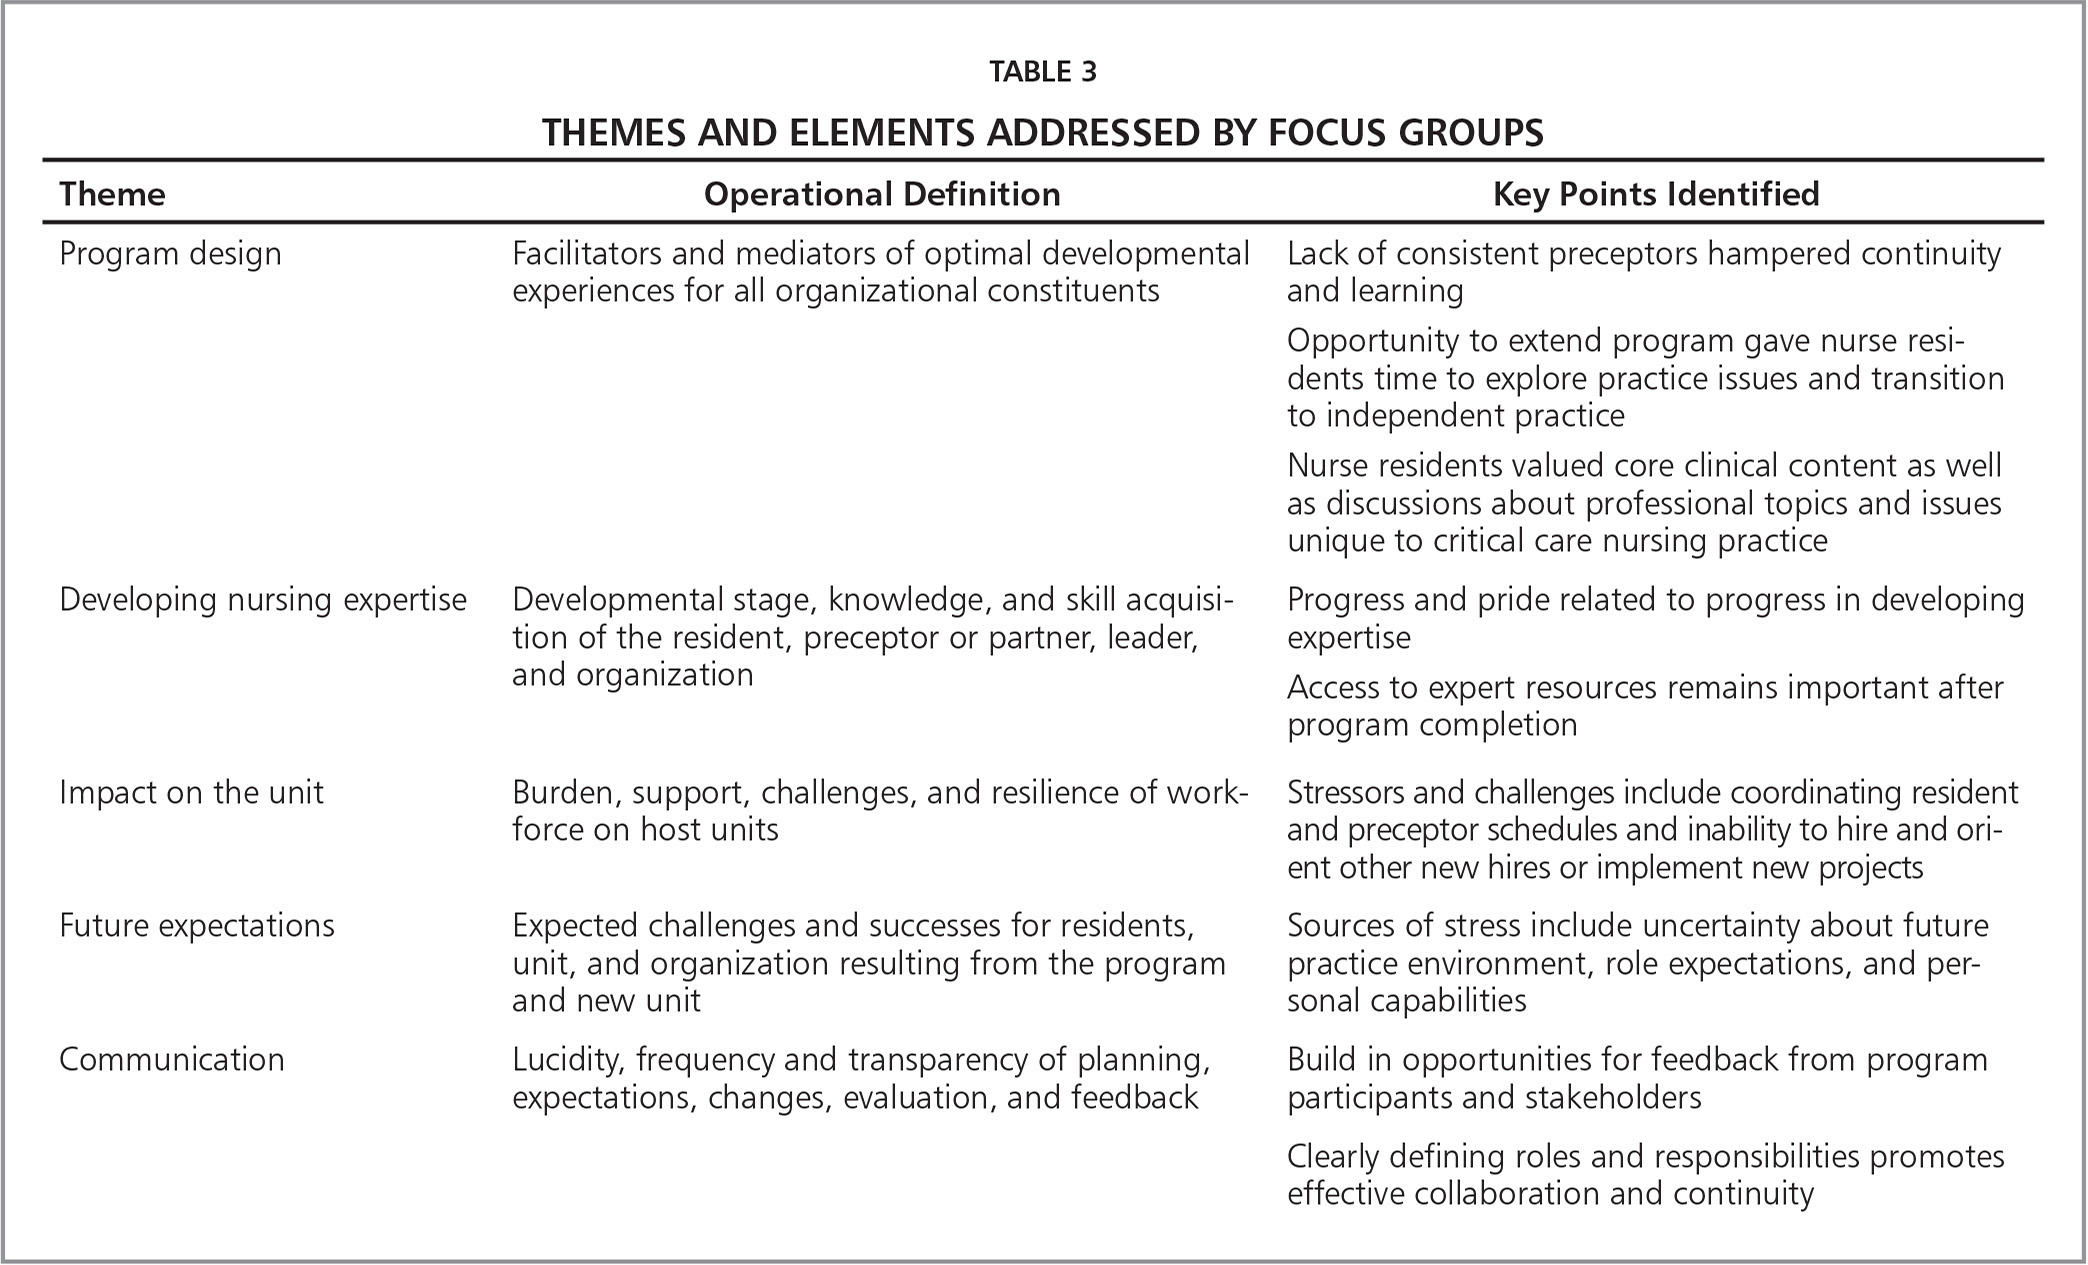 Themes and Elements Addressed by Focus Groups